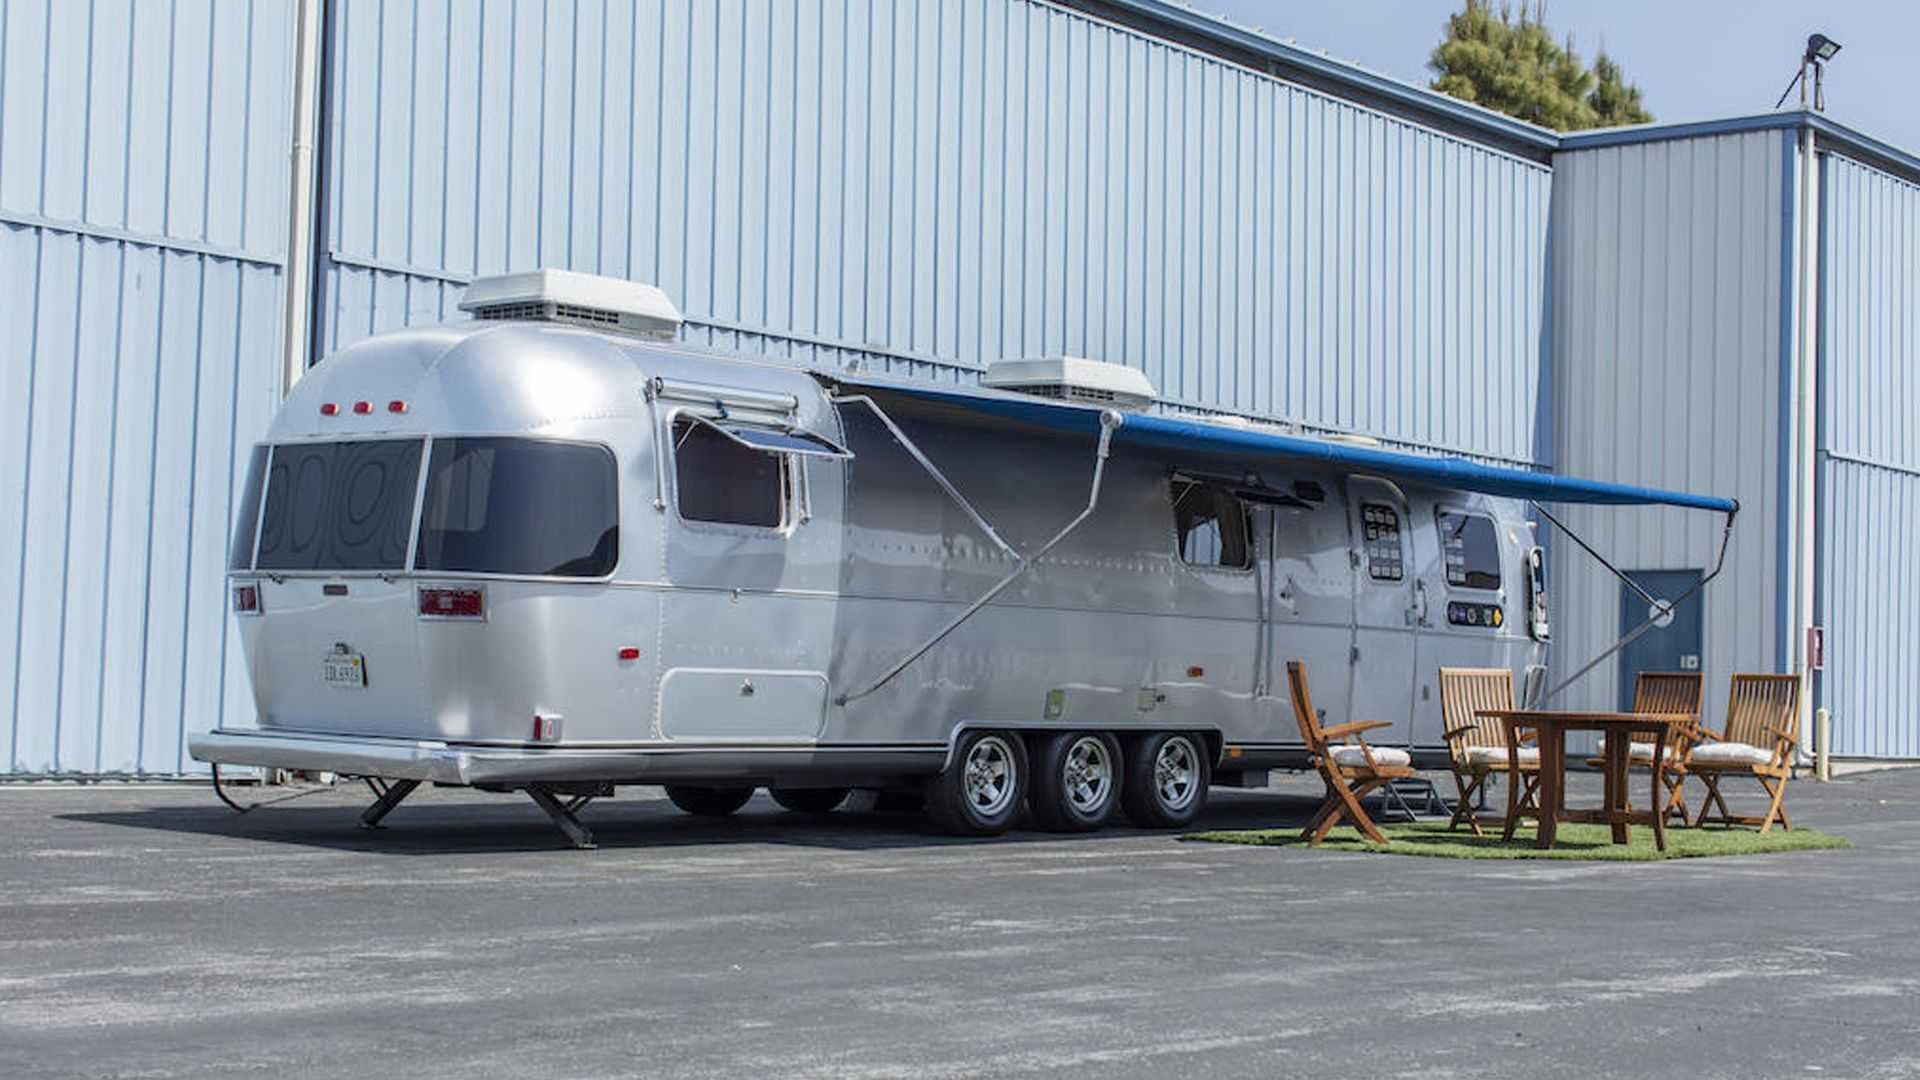 Few caravans are as iconic as Tom Hanks' Airstream